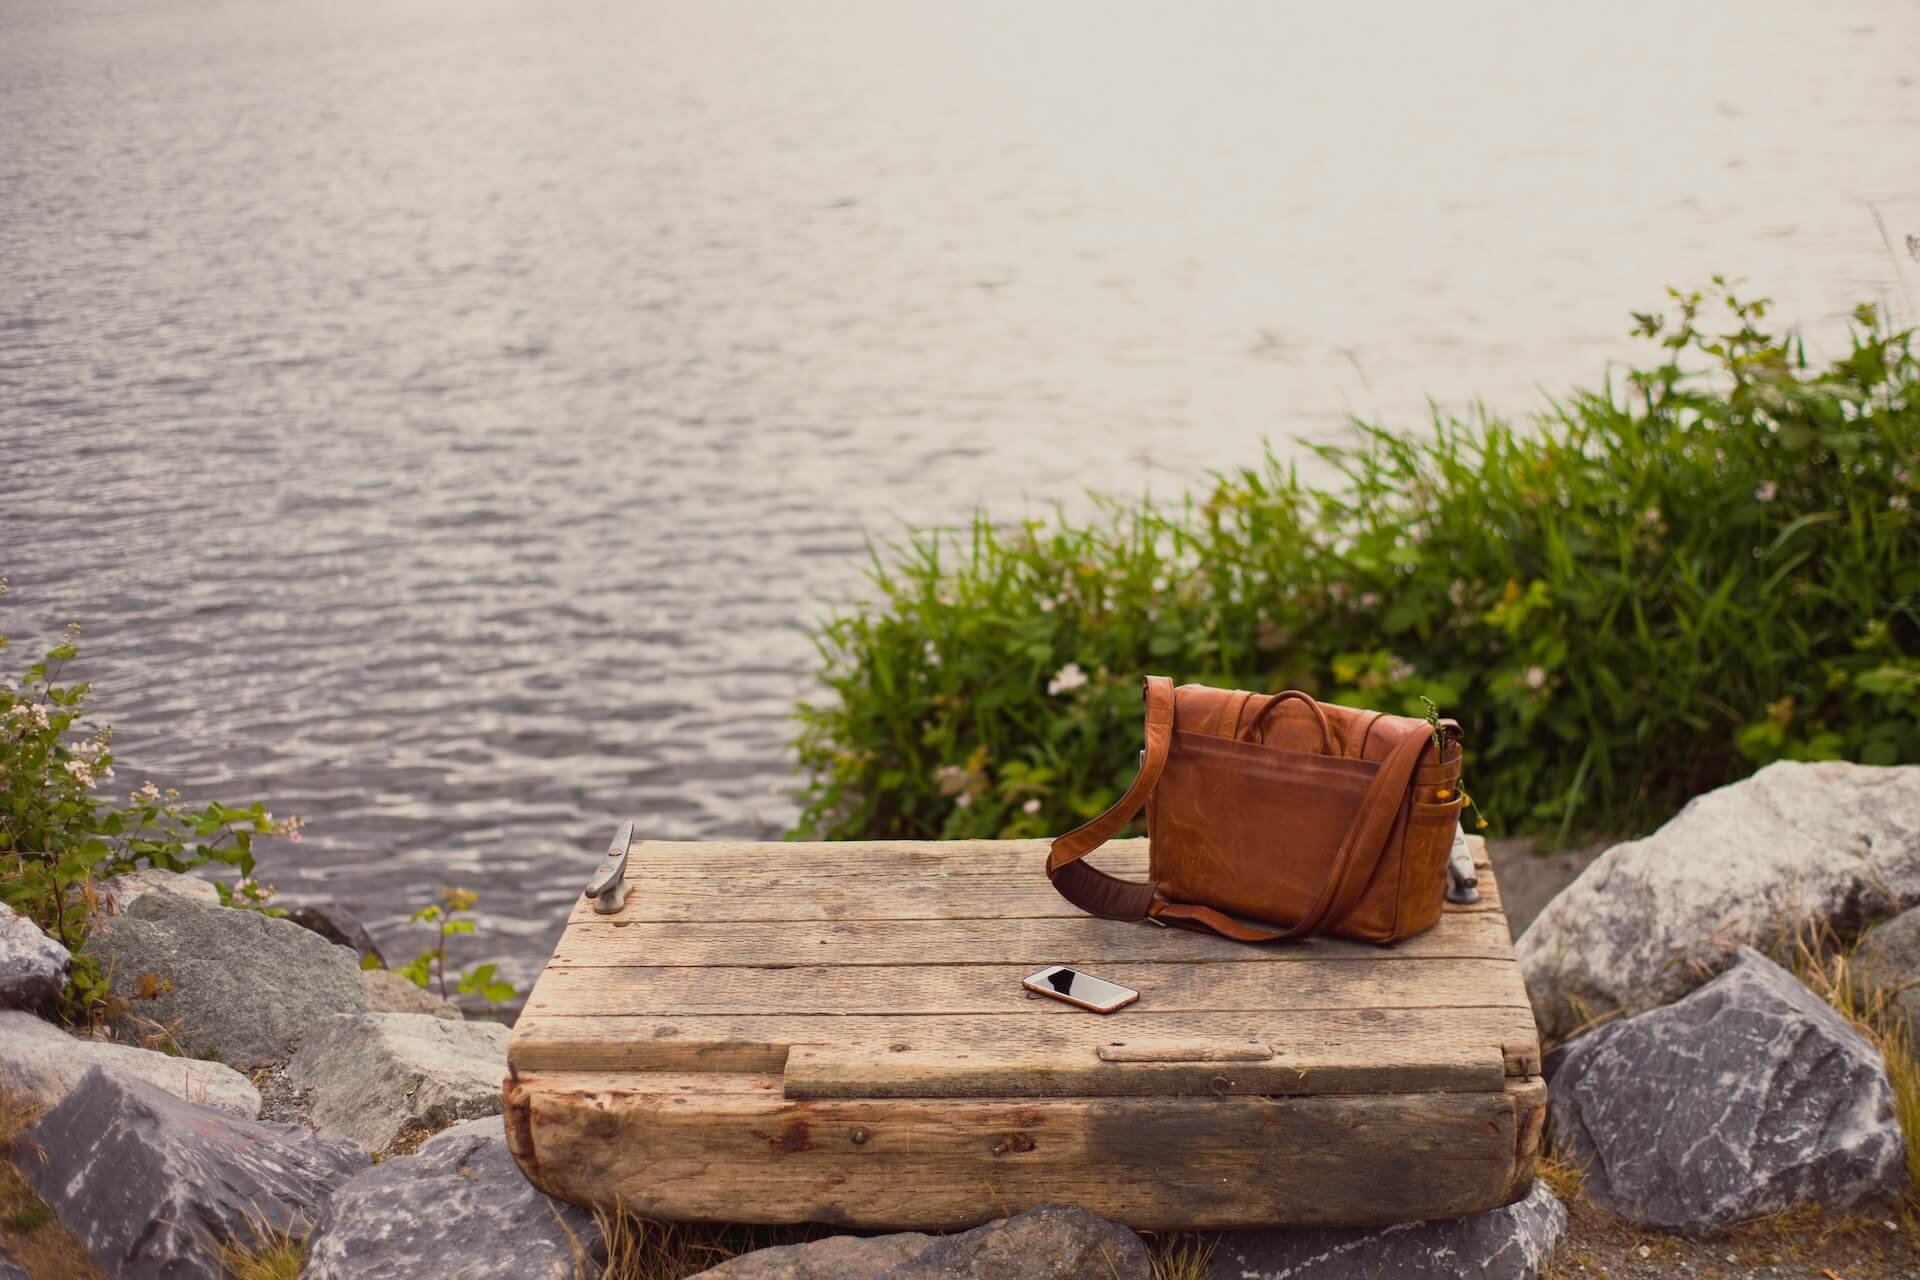 Messenger bag next to a cell phone, all atop a wooden pallet in front of a body of water